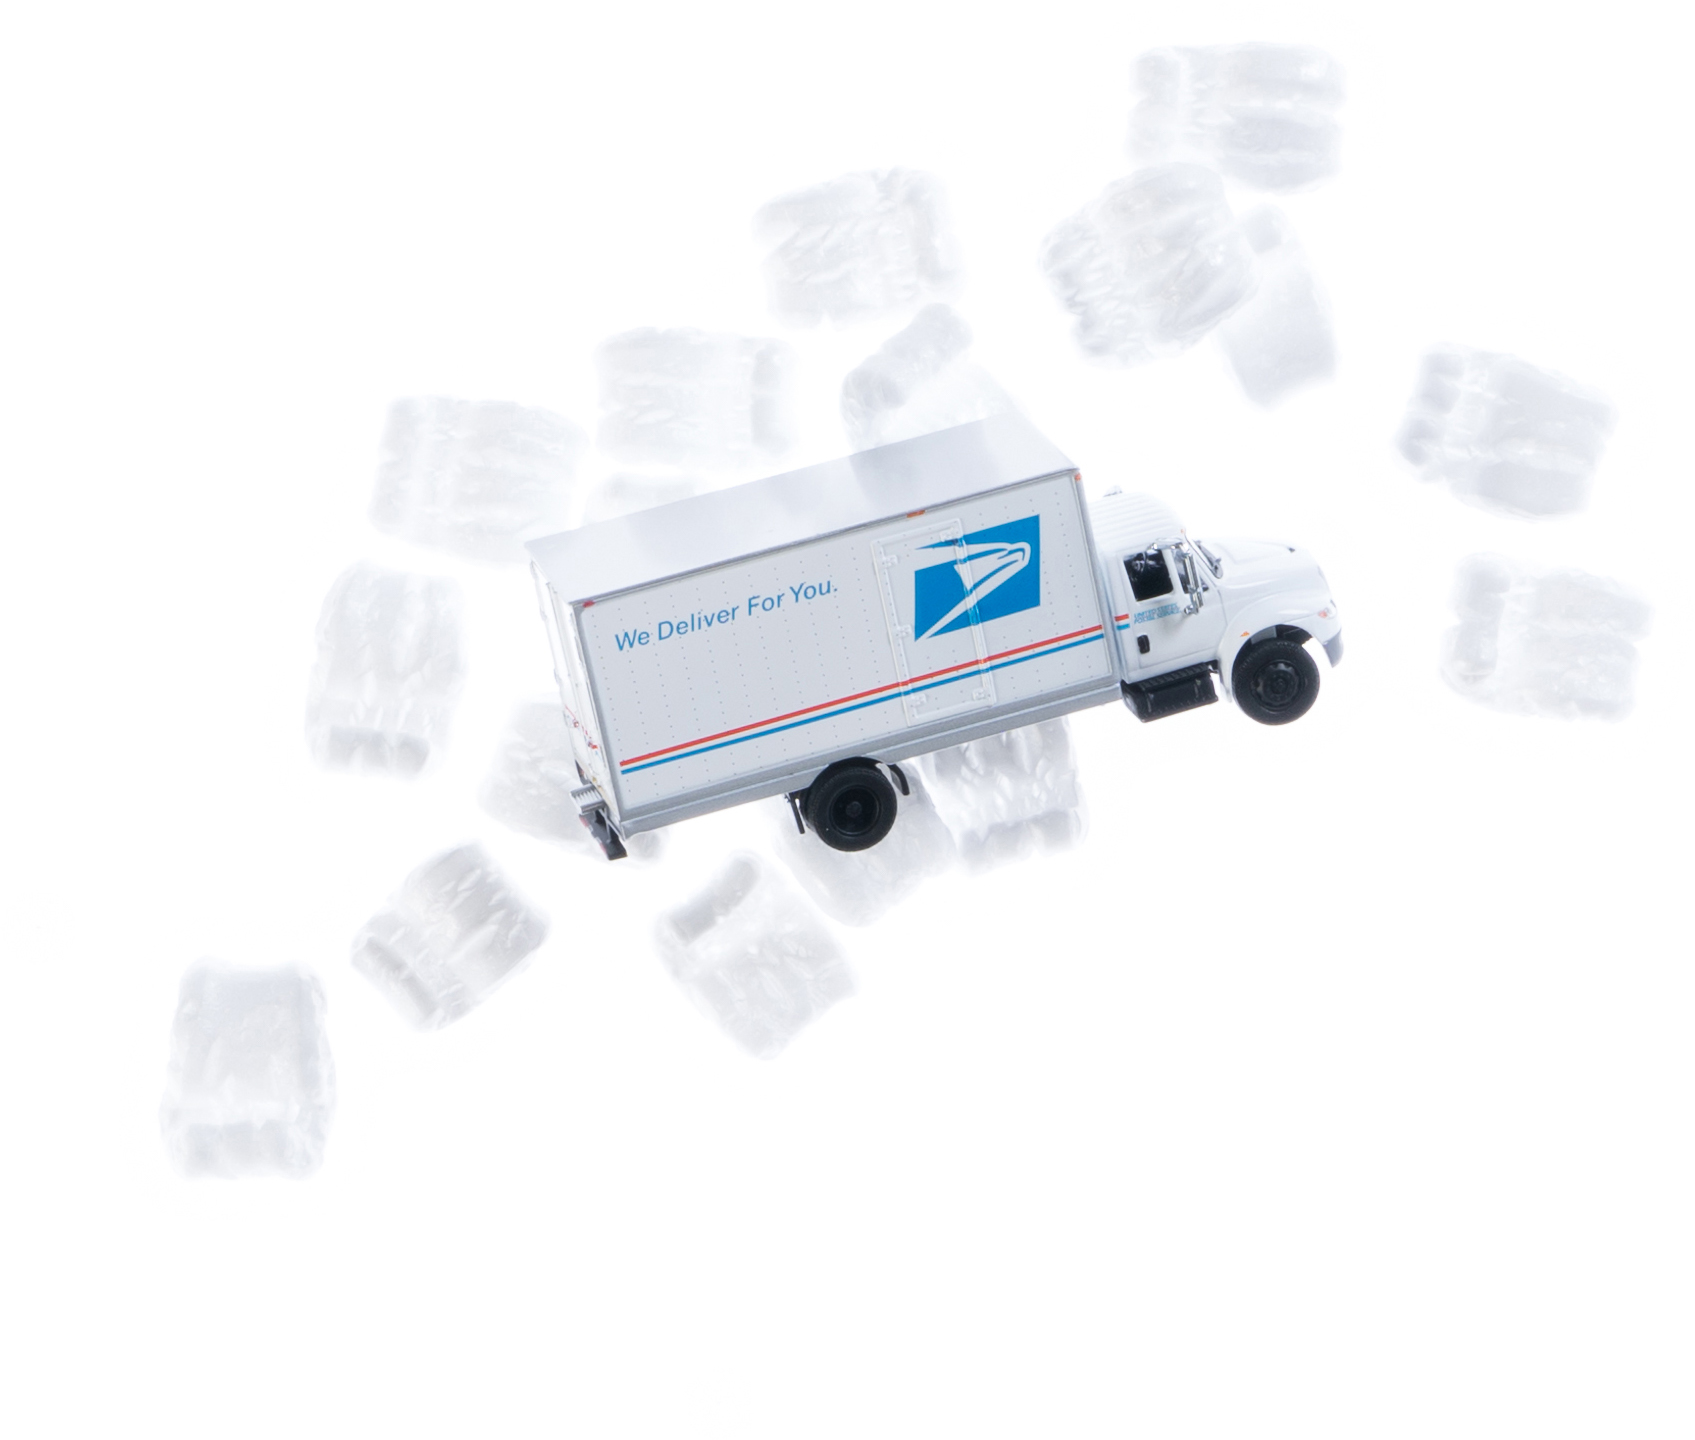 USPS shipping truck